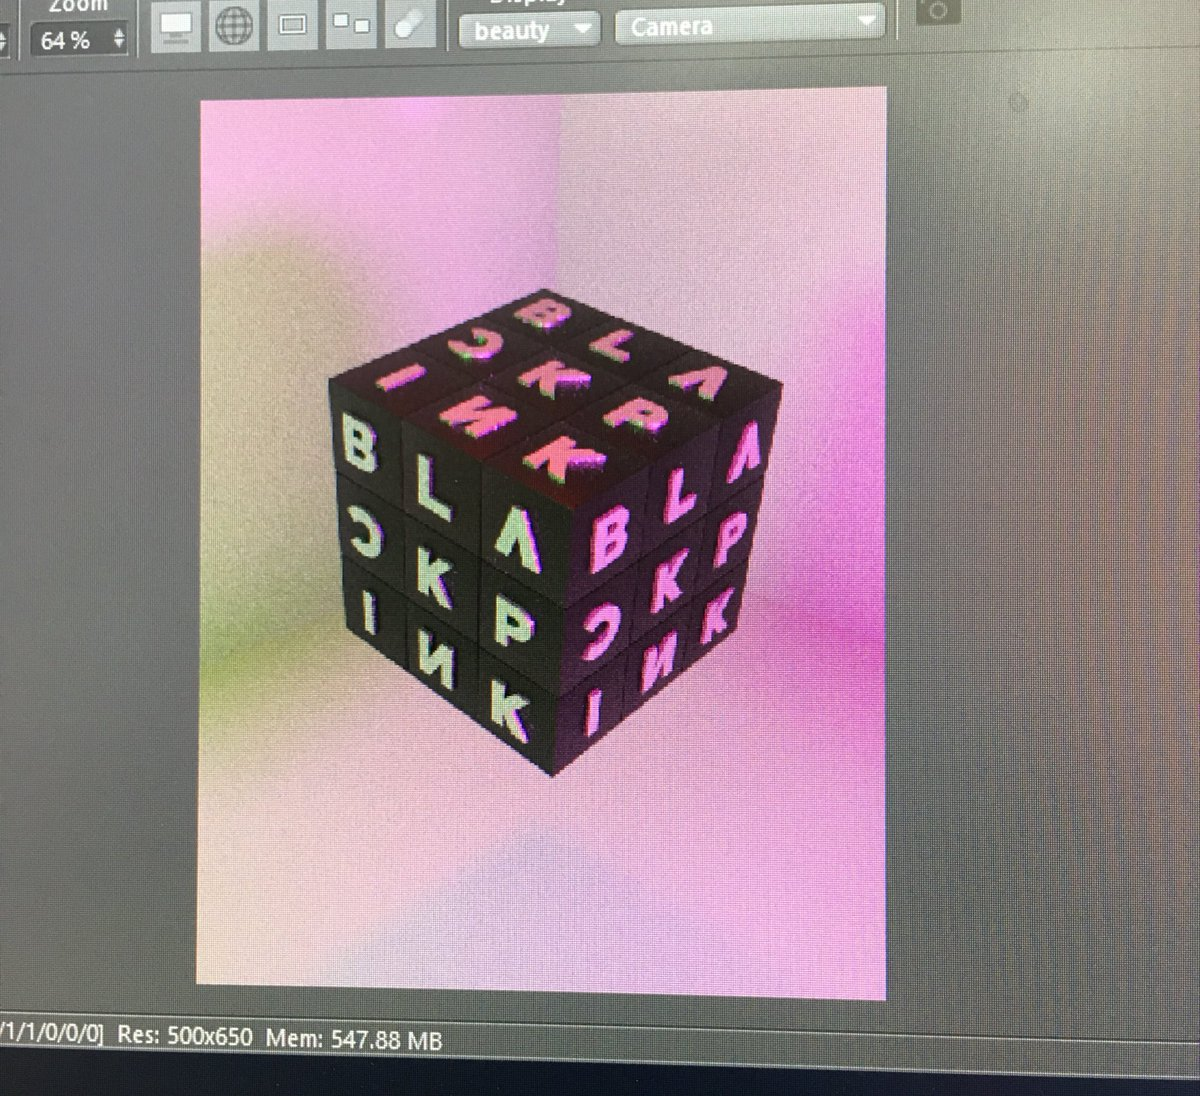 Should I post my artworks too? I just started yesterday messing around with 3D and it is ton of fun. #BLINKS<br>http://pic.twitter.com/qMGfqRPE38